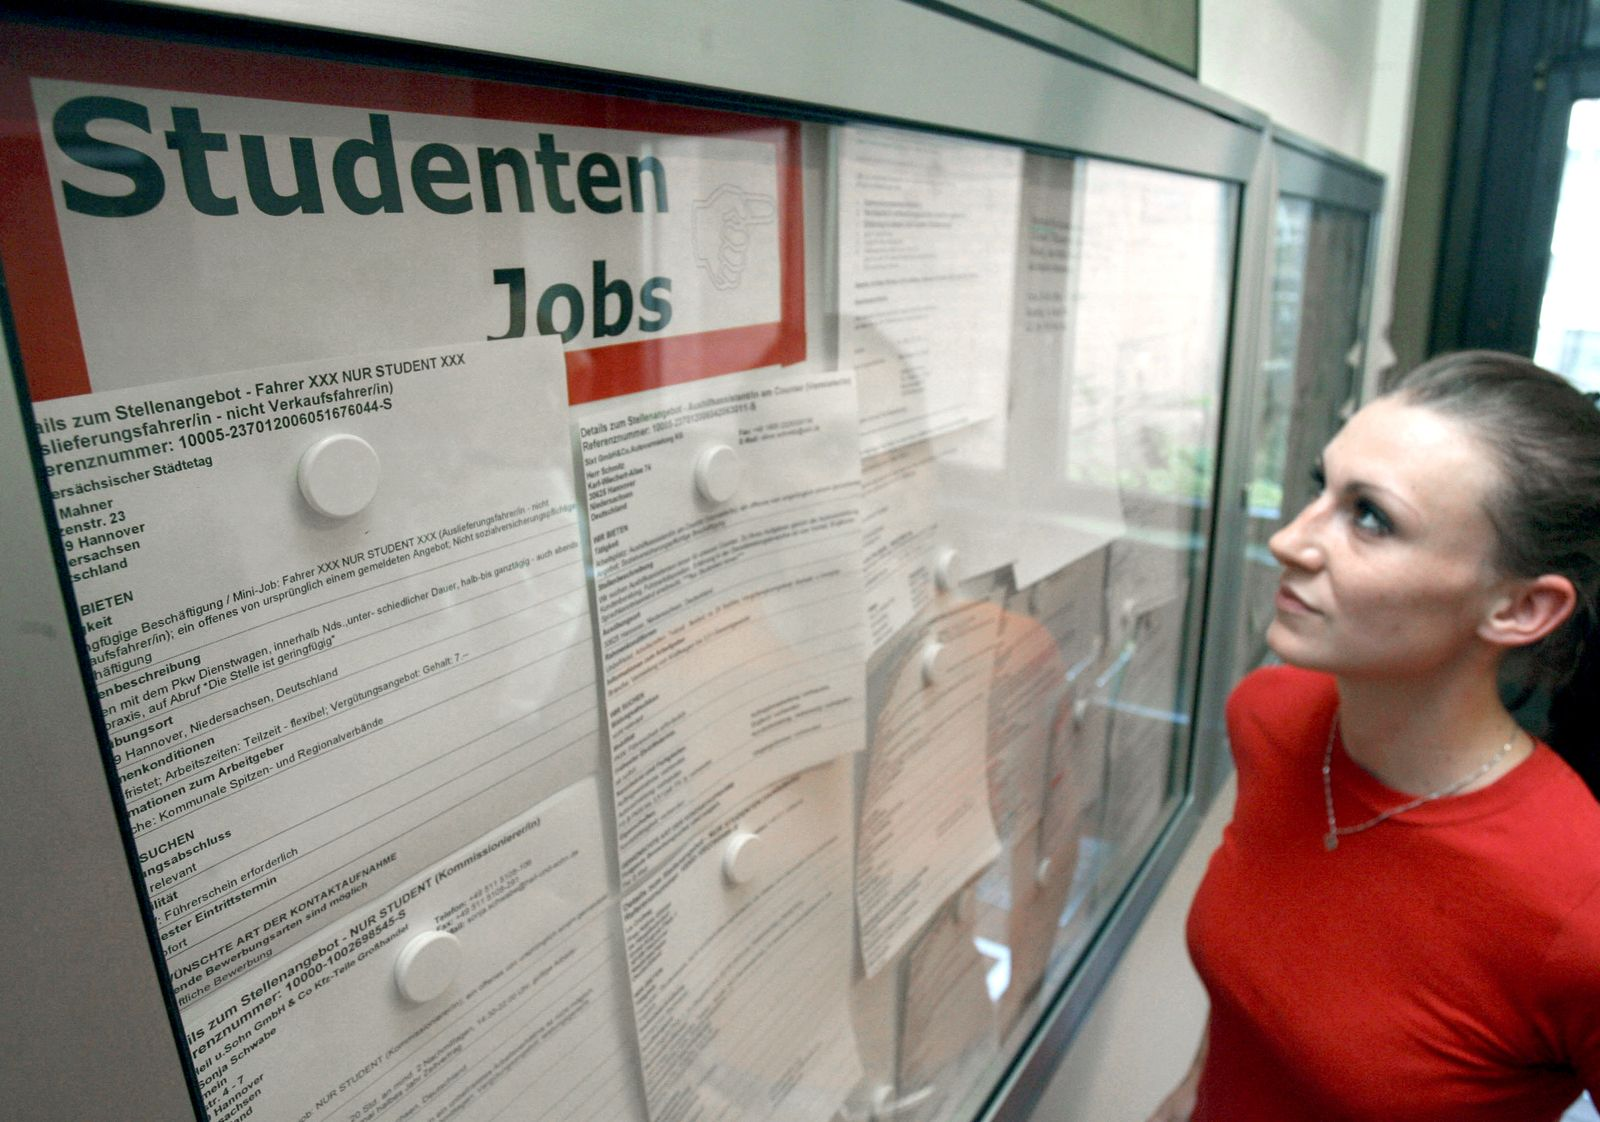 Jobs / Studenten